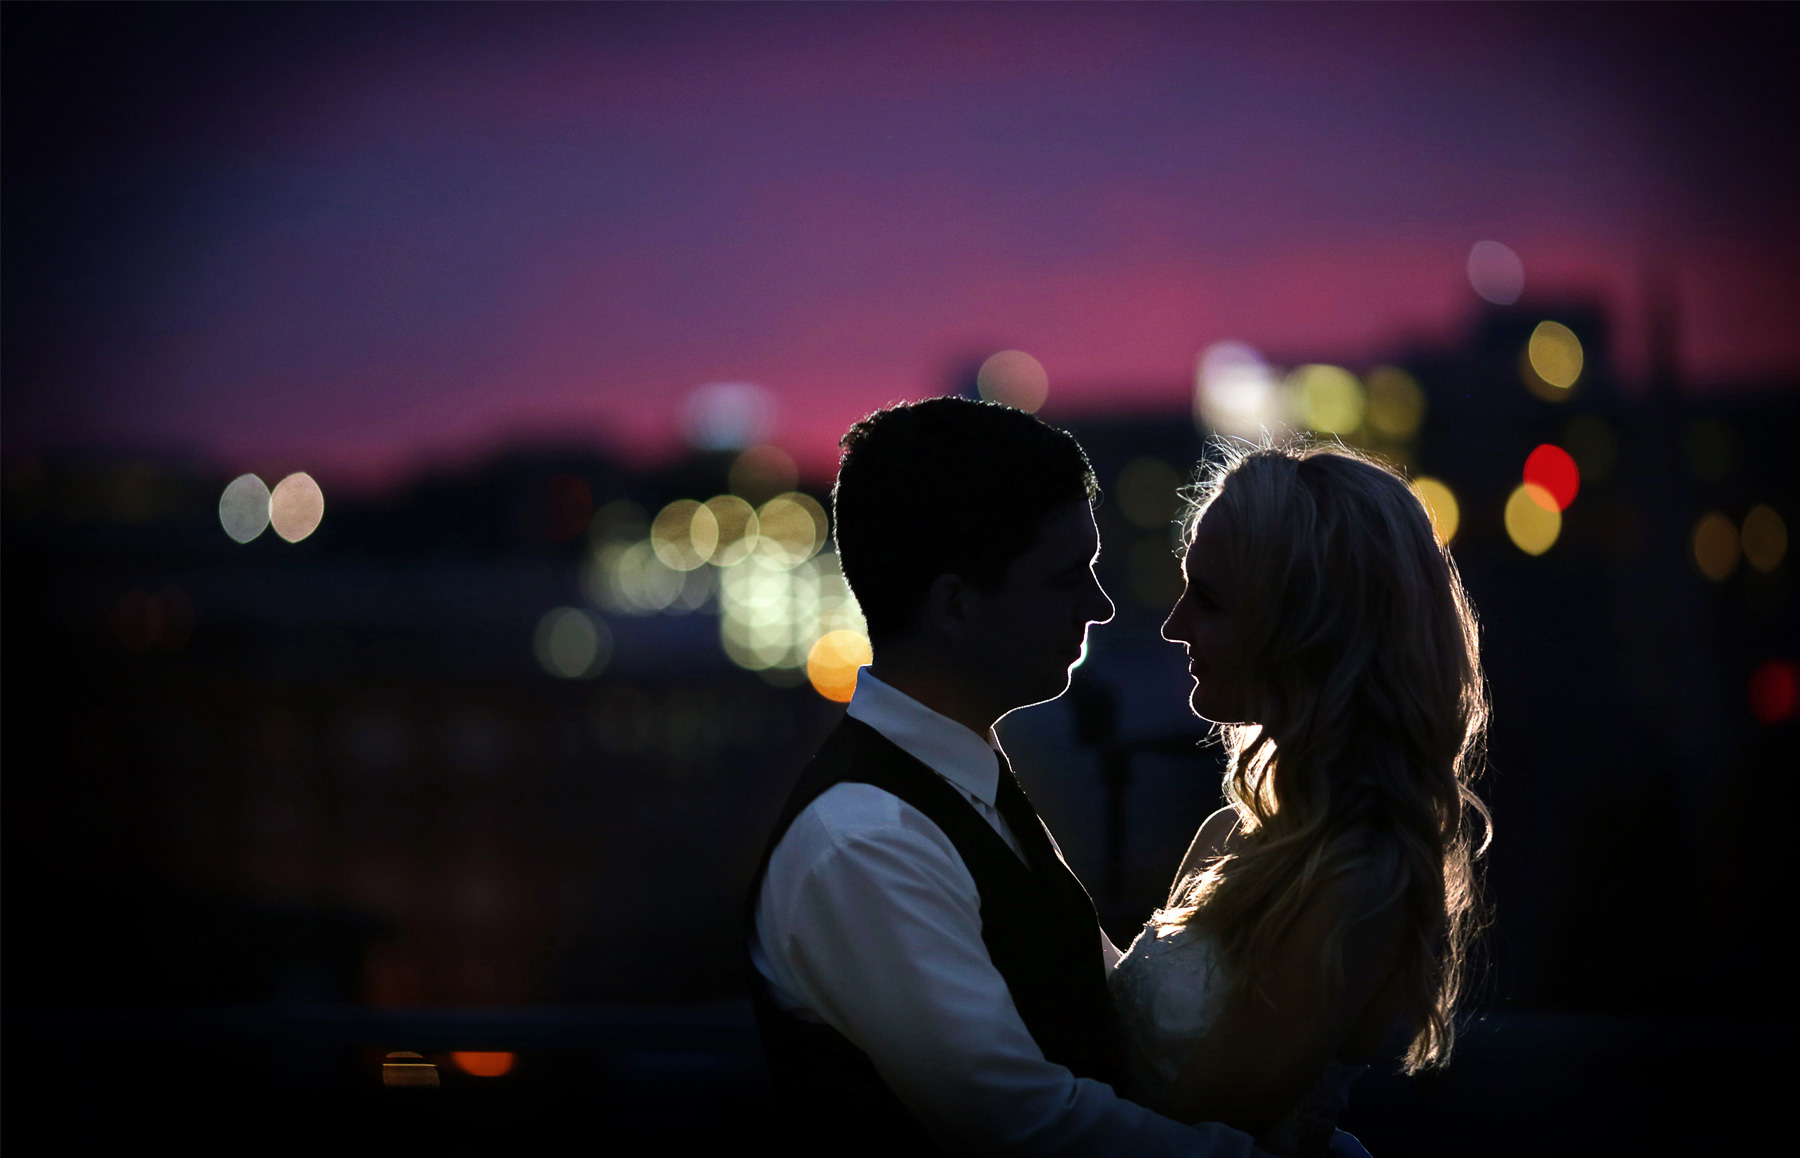 25-Saint-Paul-Minnesota-Wedding-Photographer-by-Andrew-Vick-Photography-Summer-Bride-Groom-Night-Romance-Laura-and-Tim.jpg